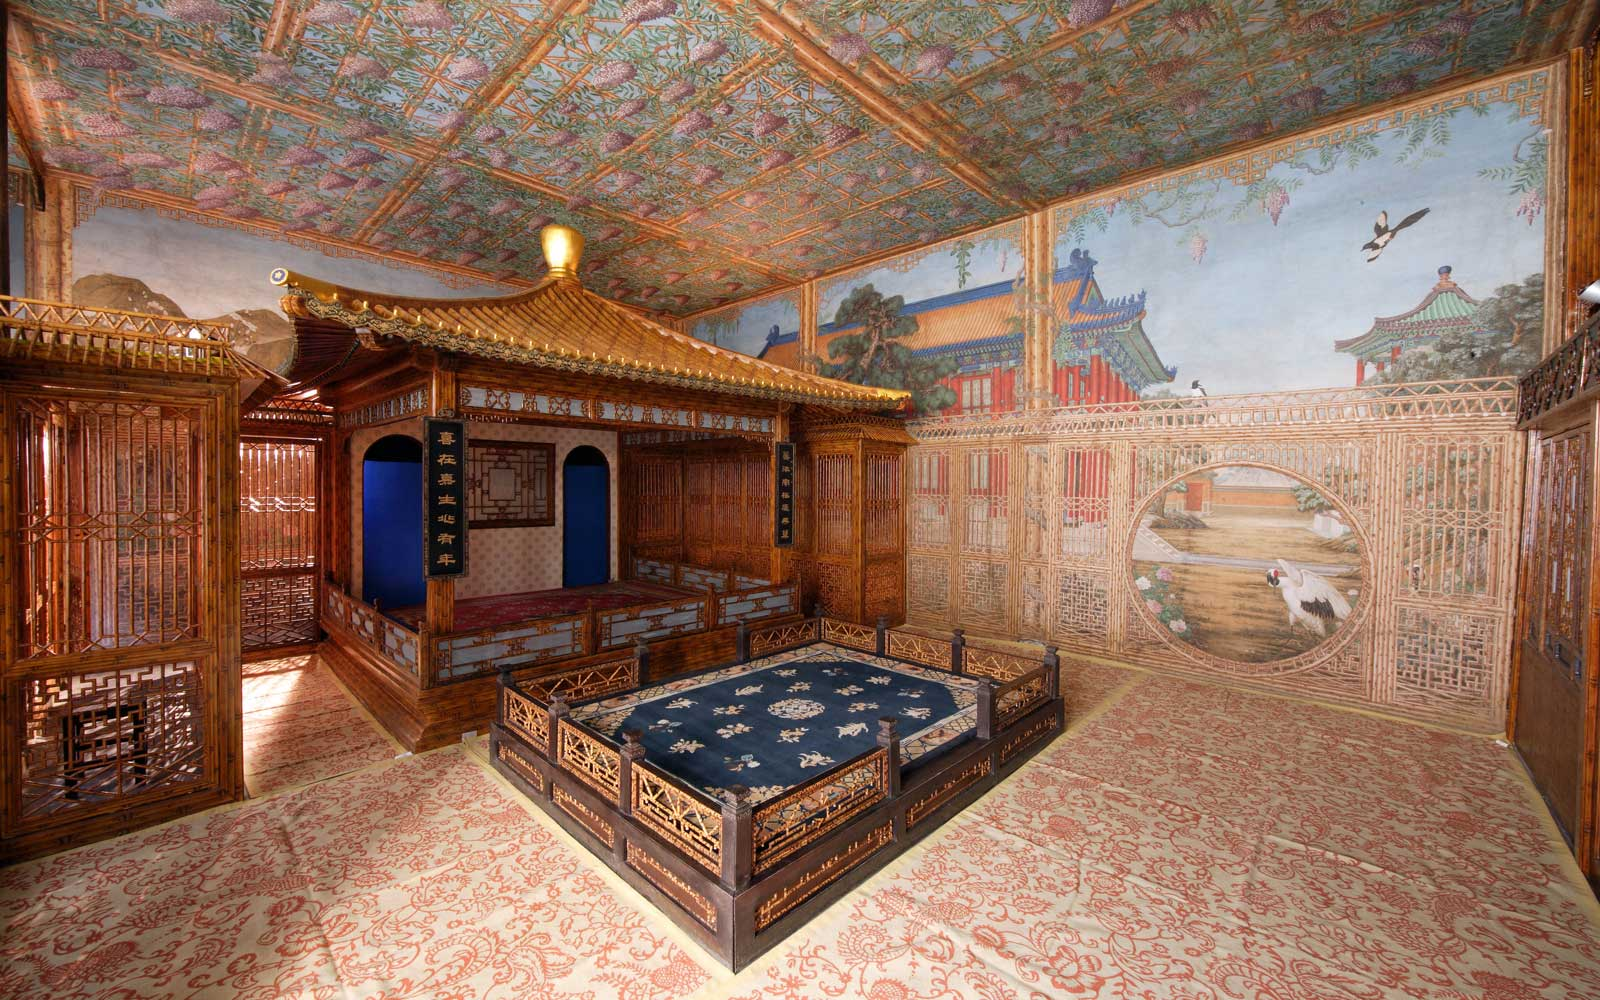 The Juanqinzhai theater room has already been restored.